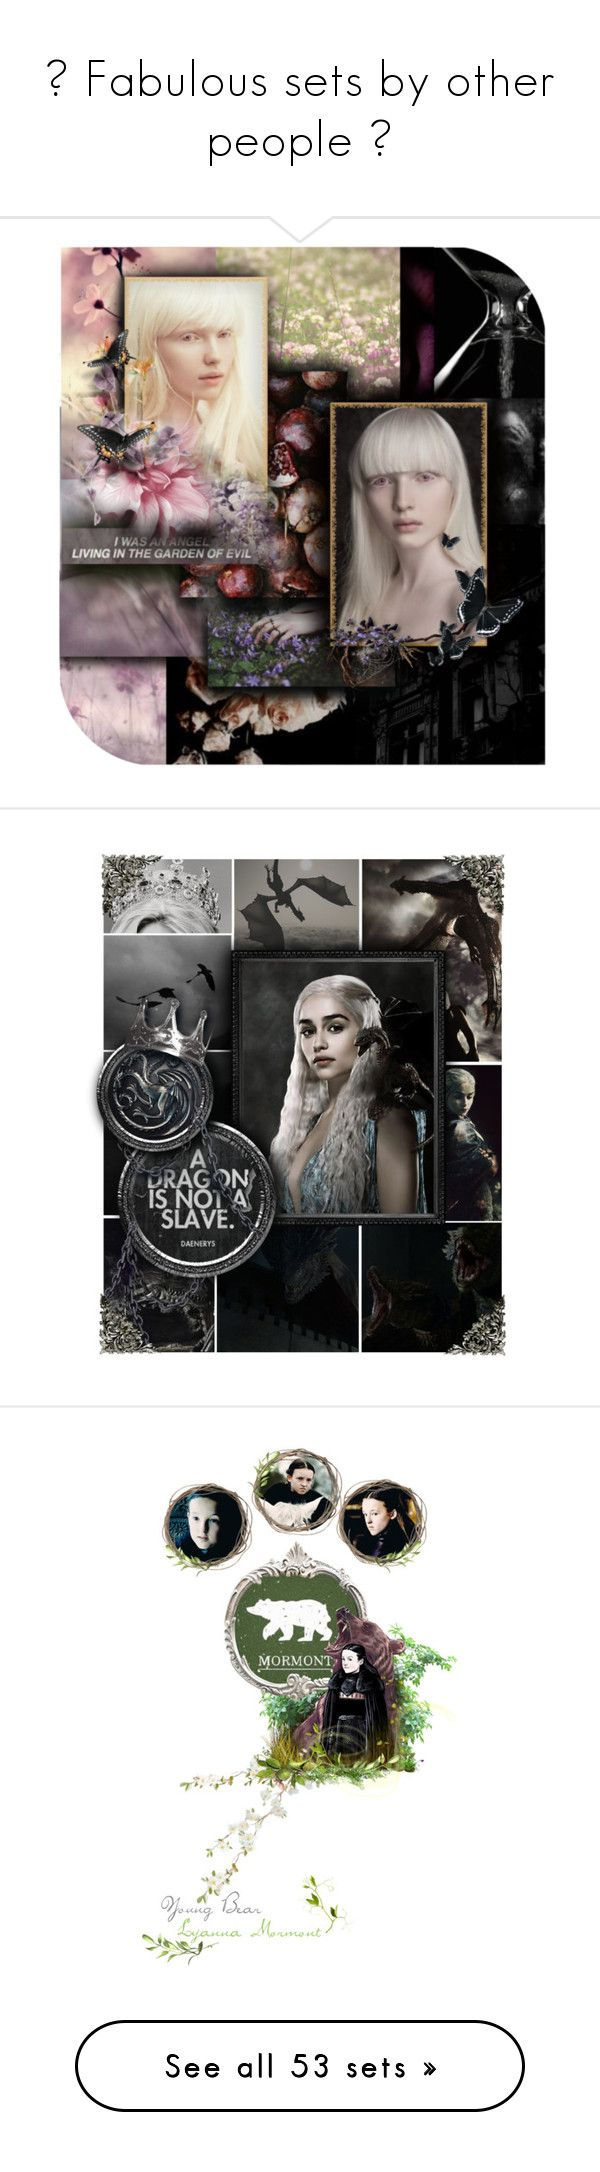 """""""♥ Fabulous sets by other people ♥"""" by annette-heathen ❤ liked on Polyvore featuring art, GameOfThrones, disney, rp, merida, brave, characters, japanese, minis and bots5"""